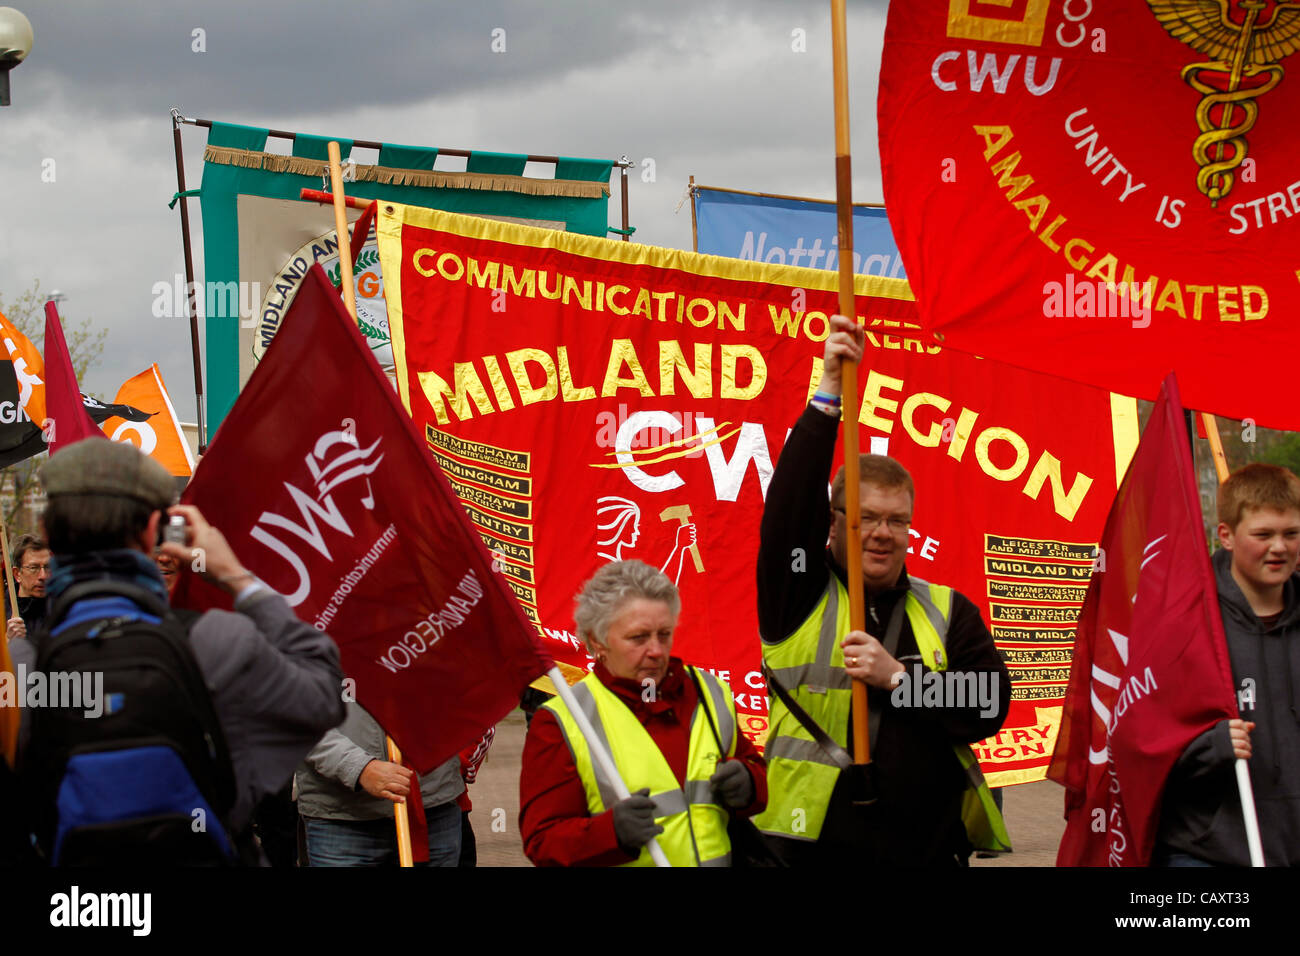 Communications Workers union - CWU Midlands region Notts NTCs May Day celebration on Saturday 5 May Met at Nottingham's - Stock Image